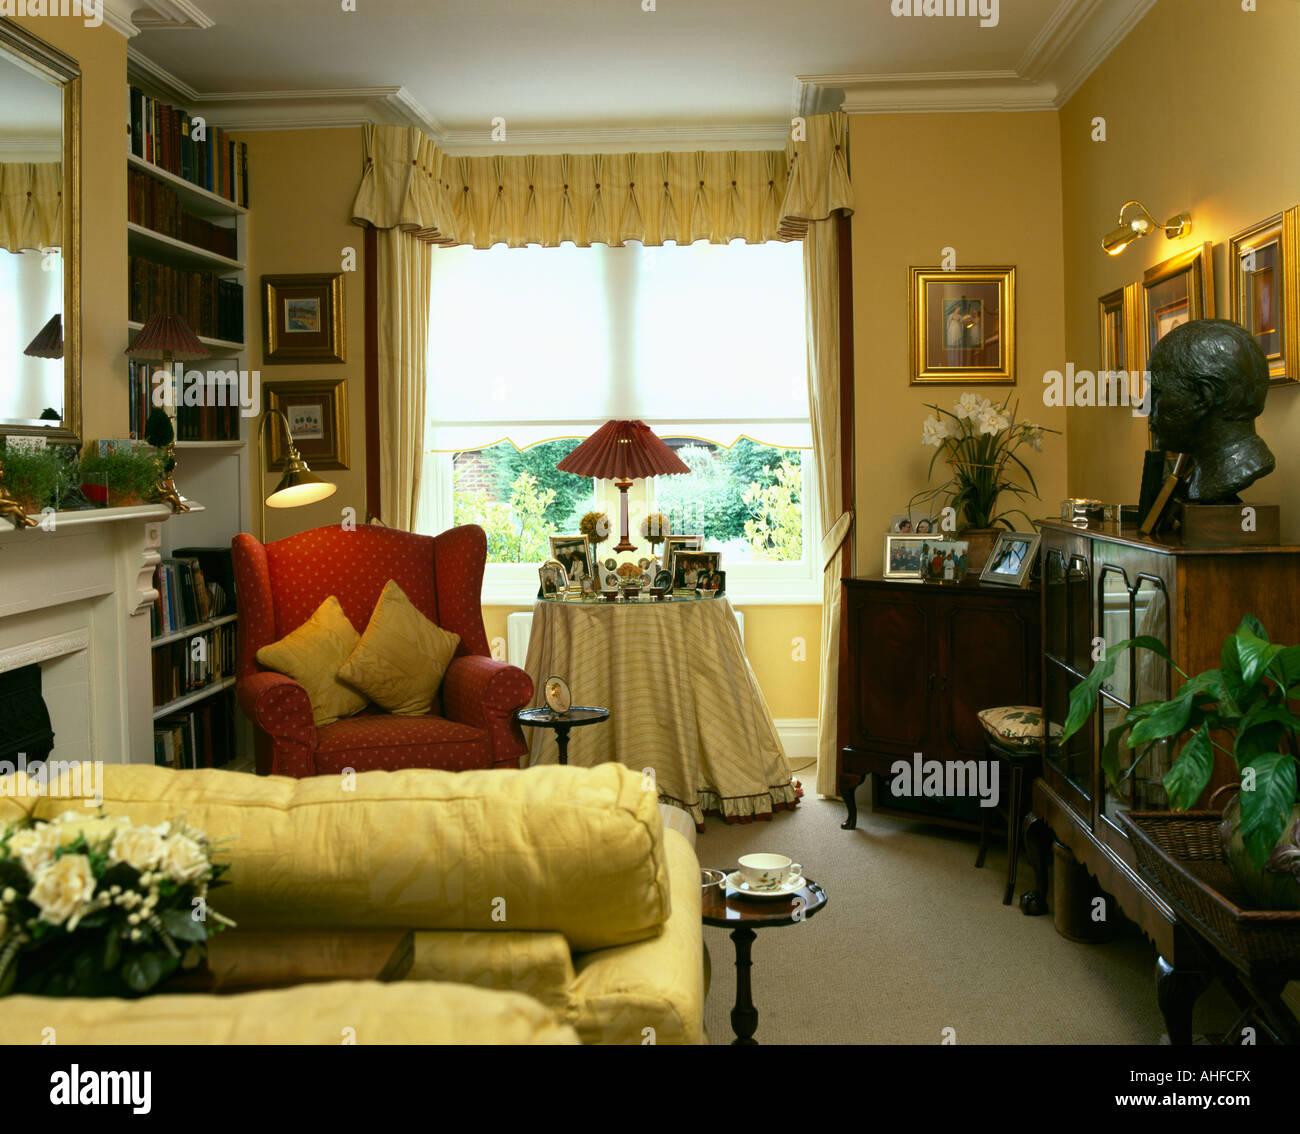 Yellow sofa & red armchair in yellow nineties living room with yellow curtains and yellow cloth on table in front Stock Photo